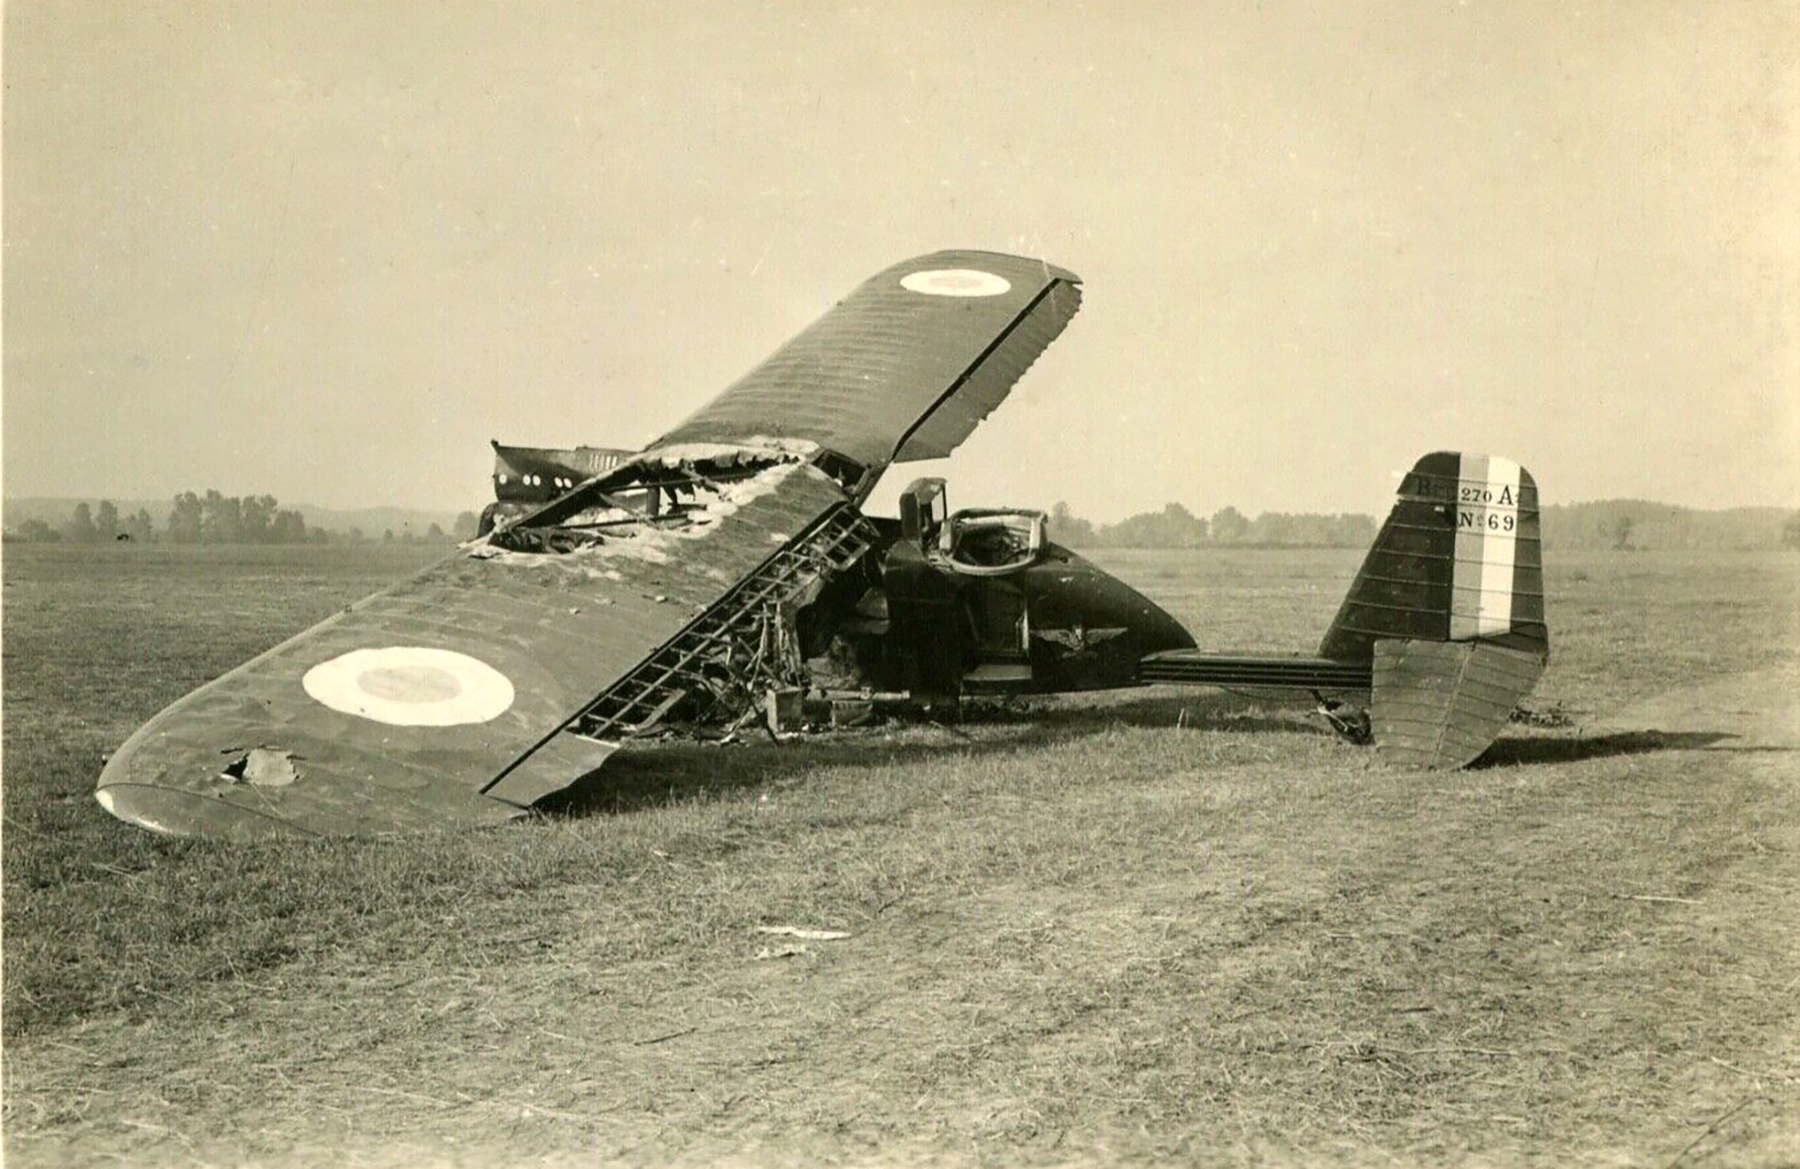 French Airforce Breguet 270 destroyed whilst on the ground battle of France May Jun 1940 ebay 05